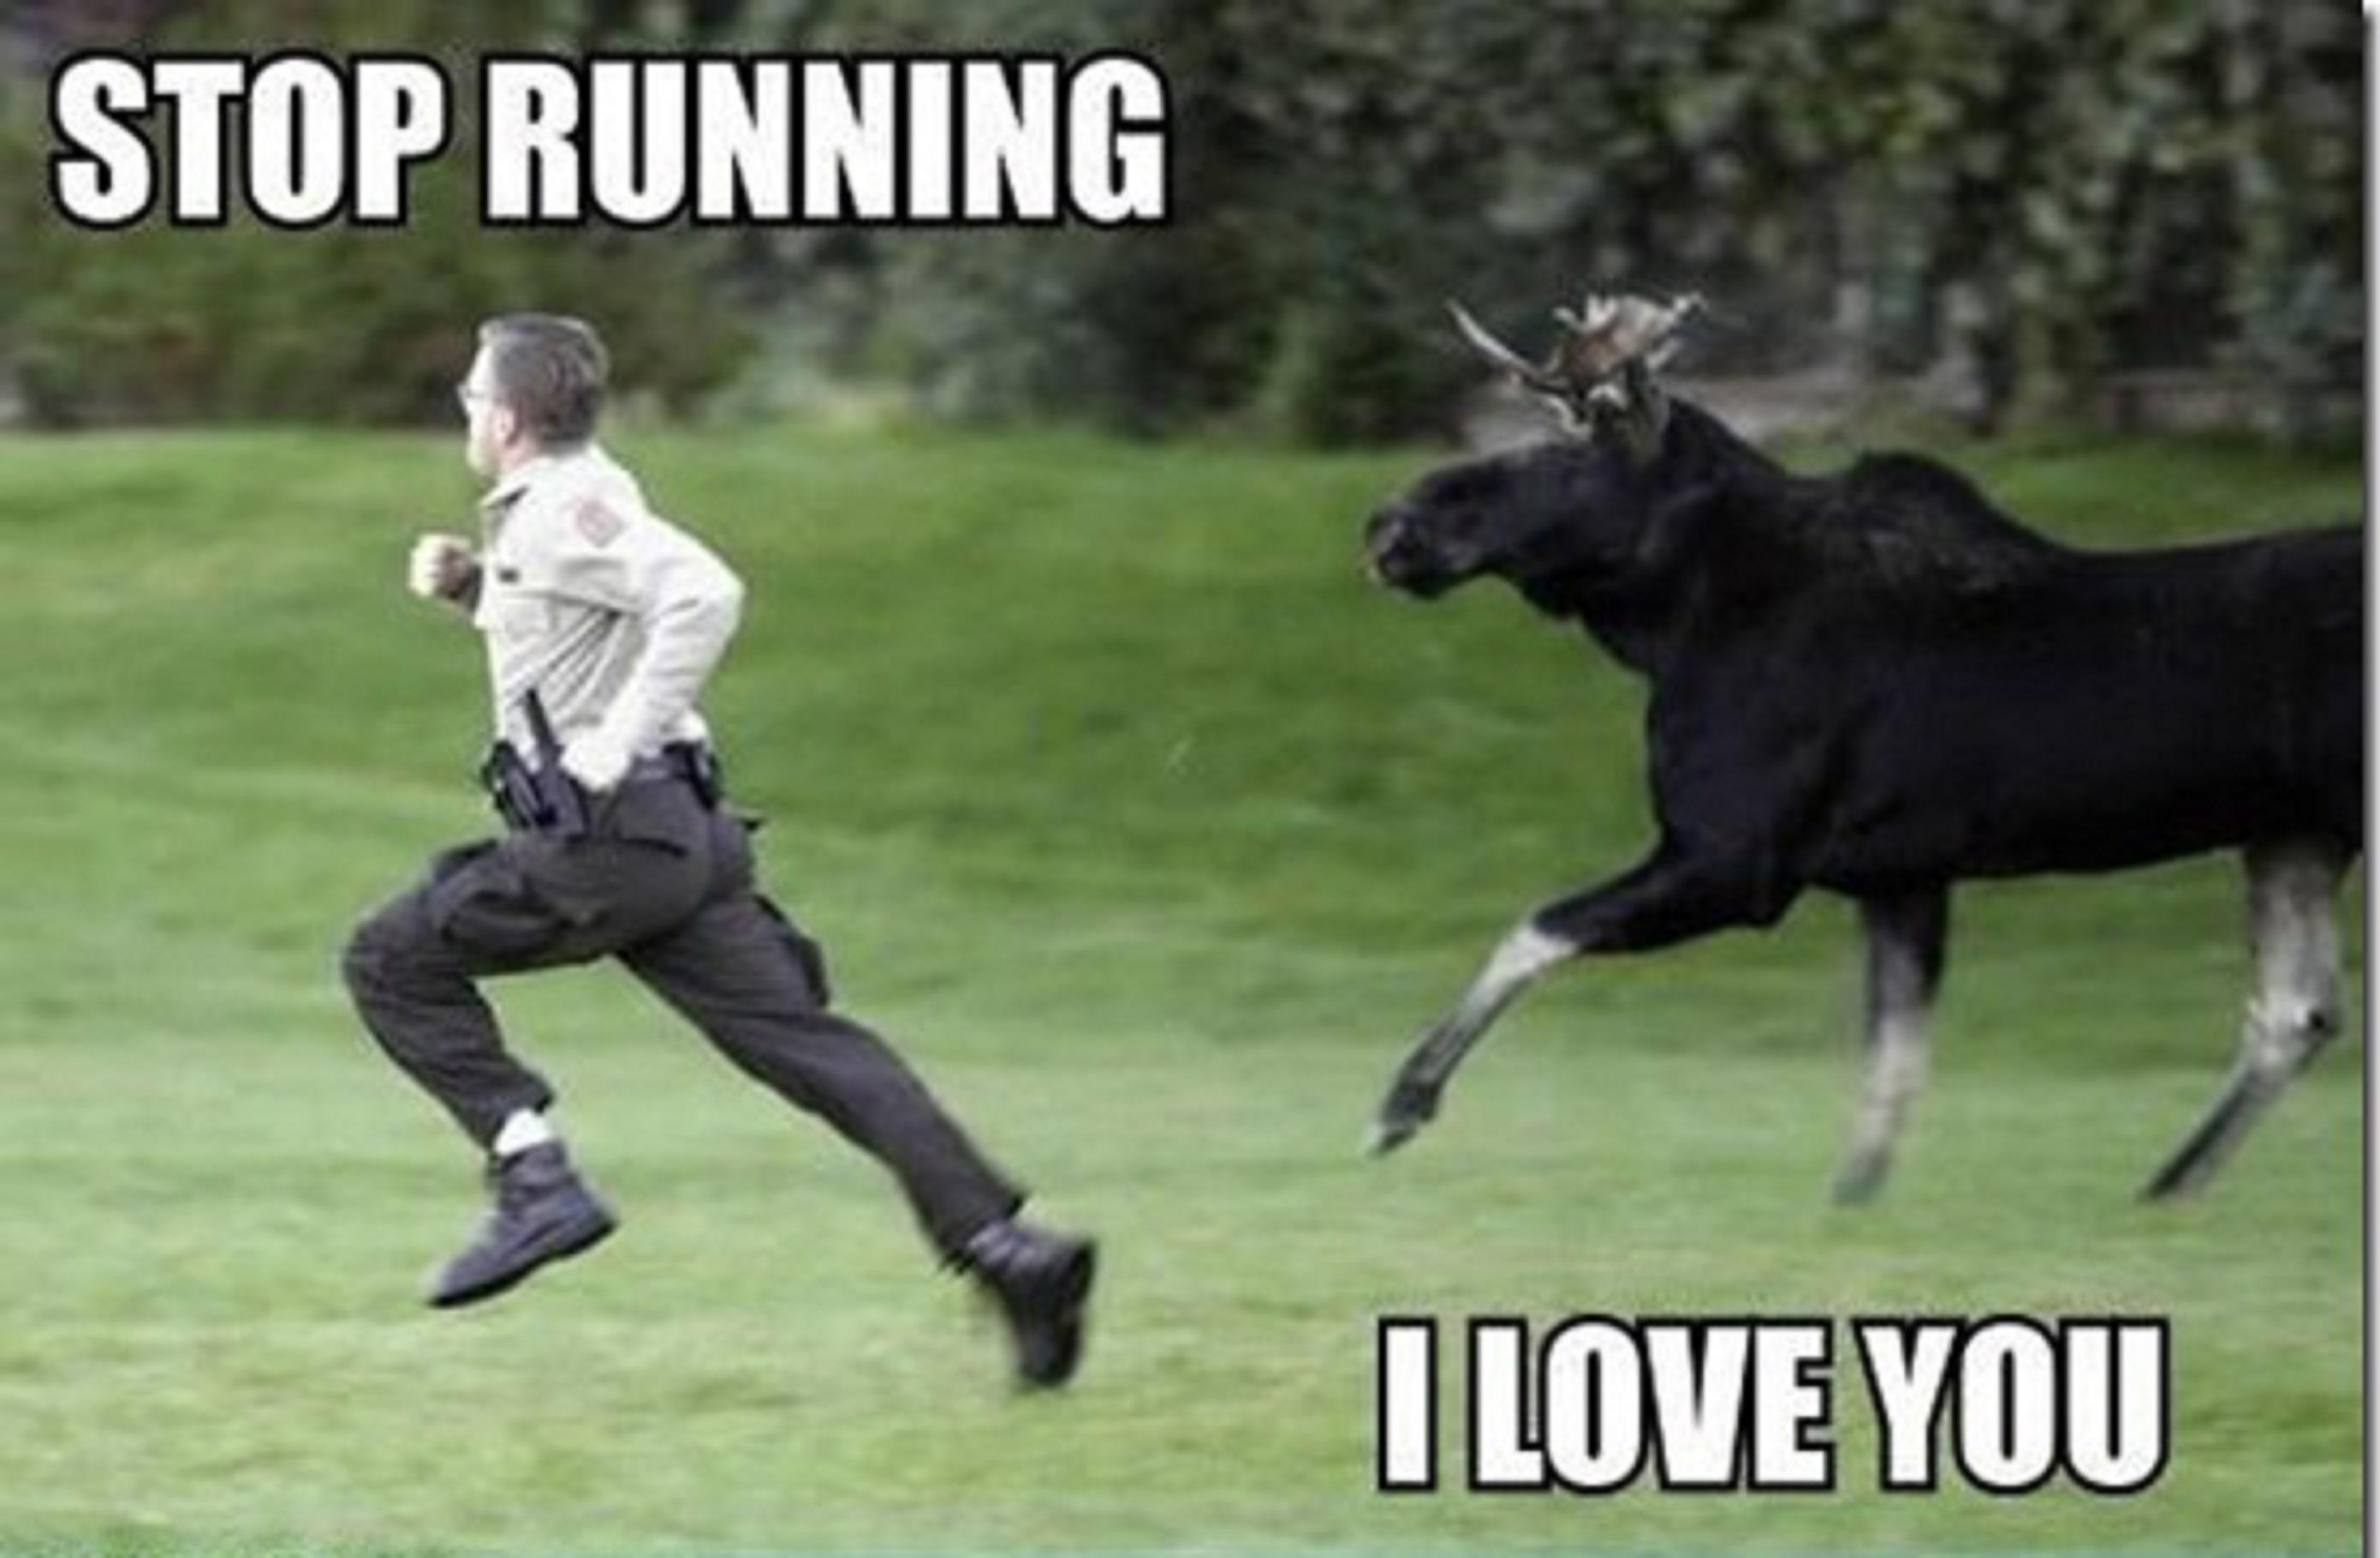 moose-chasing-man-with-the-cap-6377.jpg